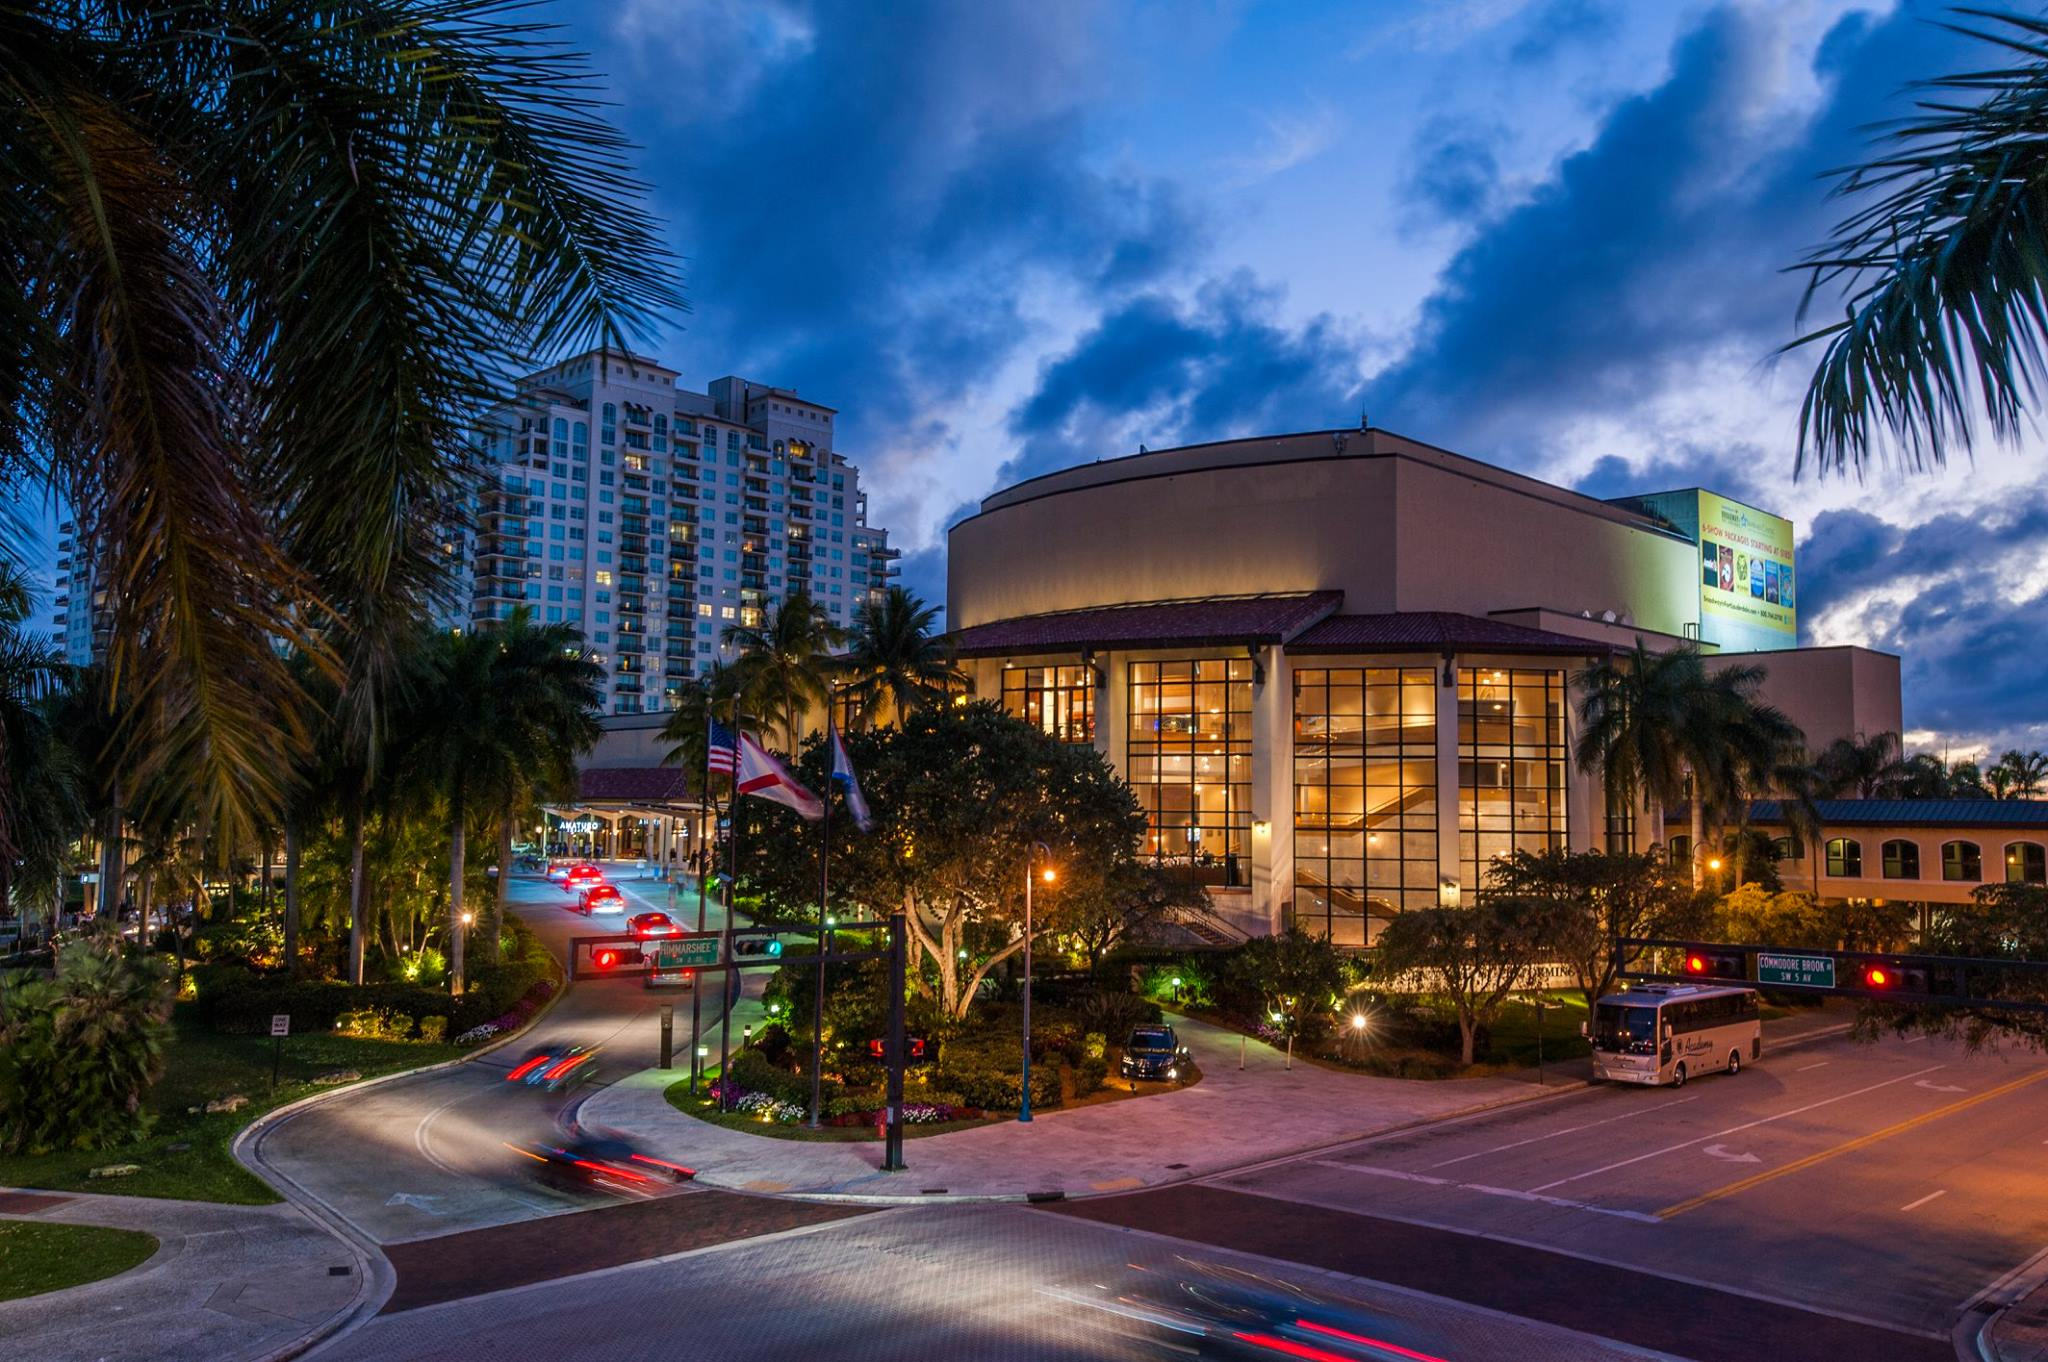 SFGN BESTLIVEbroward center performing arts